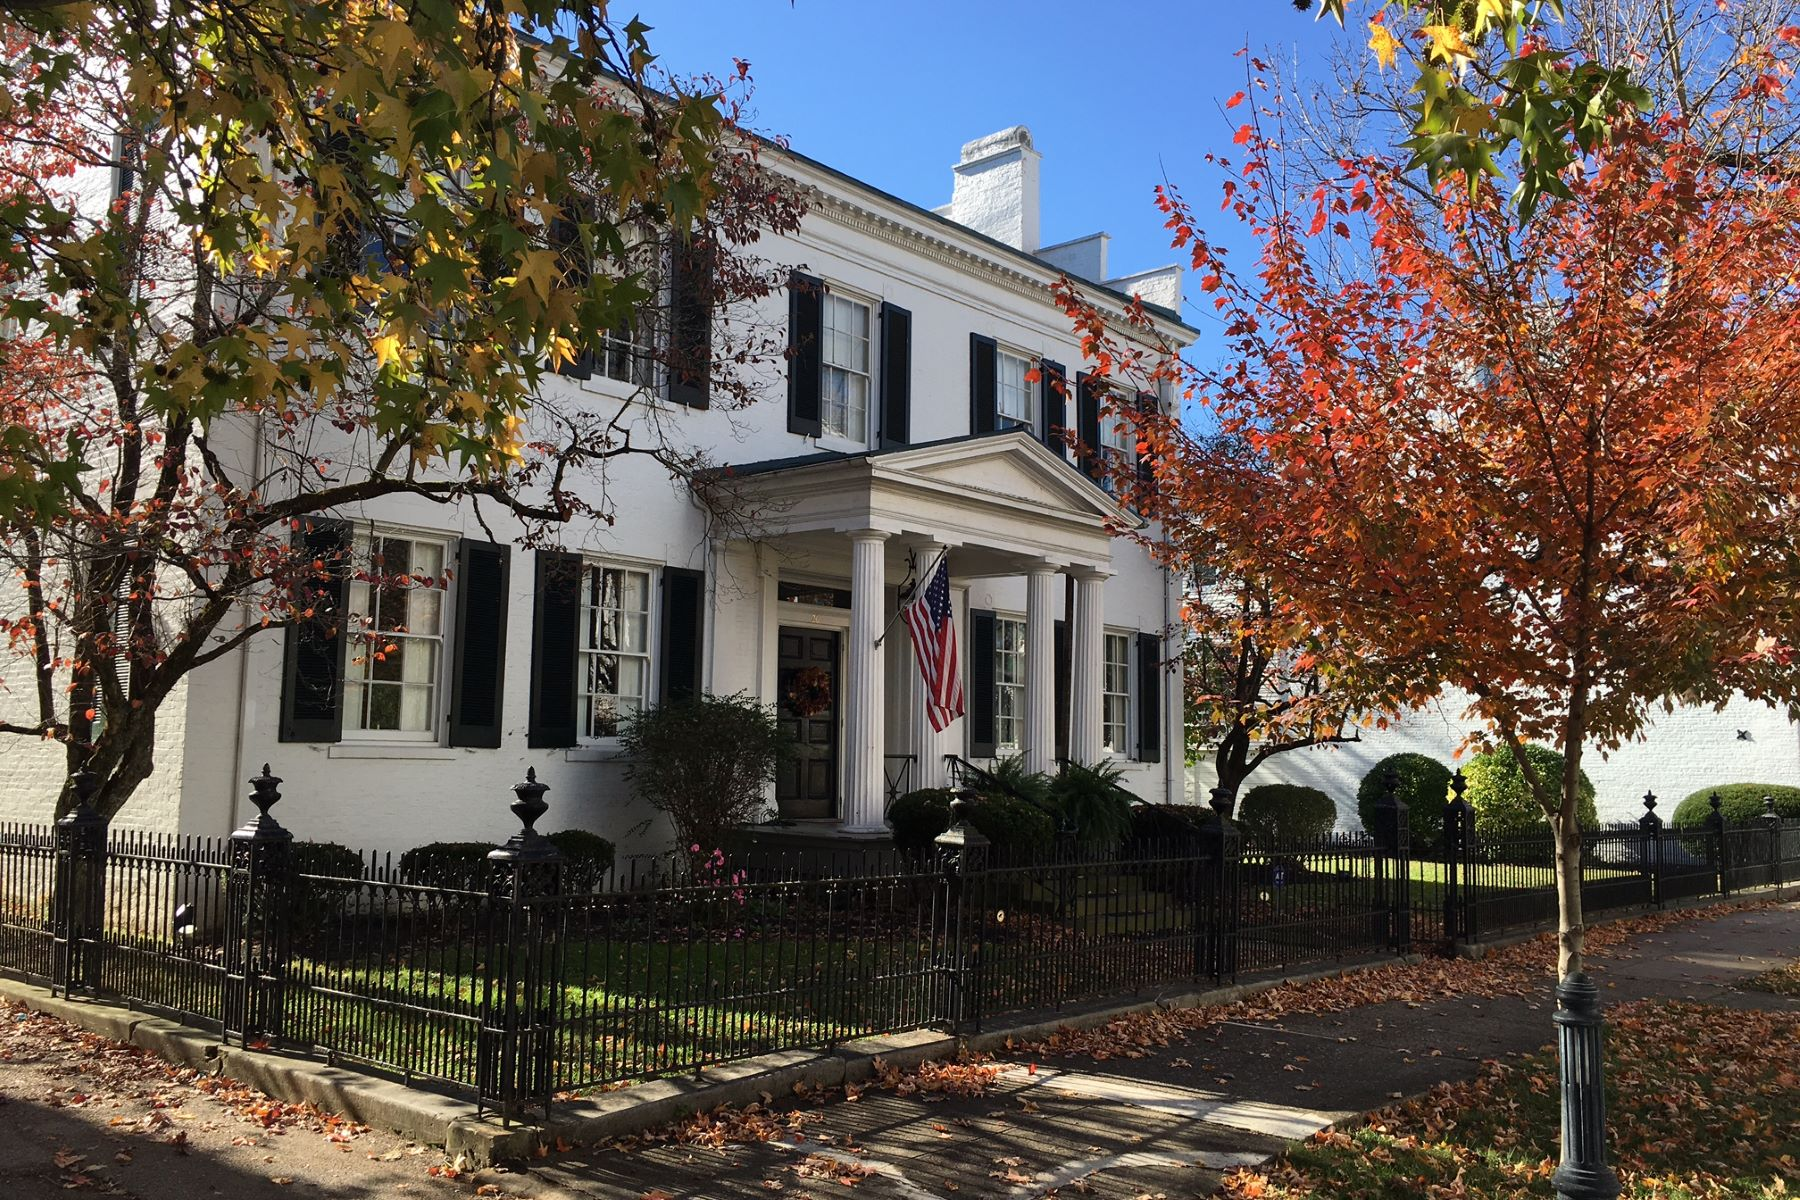 Single Family Home for Sale at 20 W Third Street 20 W 3rd Street Maysville, Kentucky 41056 United States